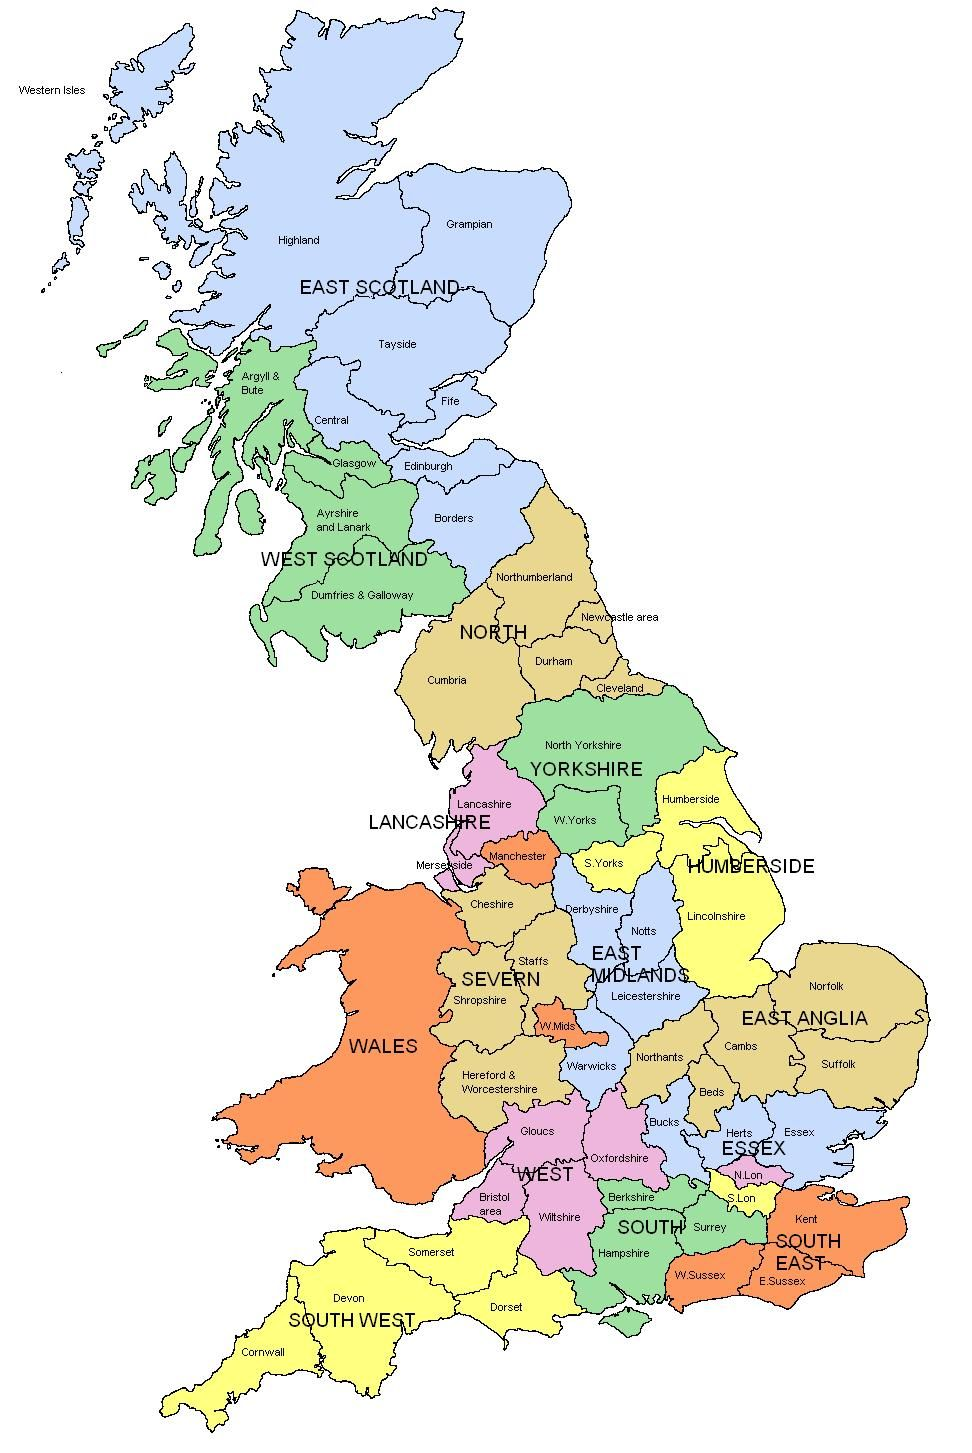 Map Of England Wales.Map Of Regions And Counties Of England Wales Scotland I Know Is